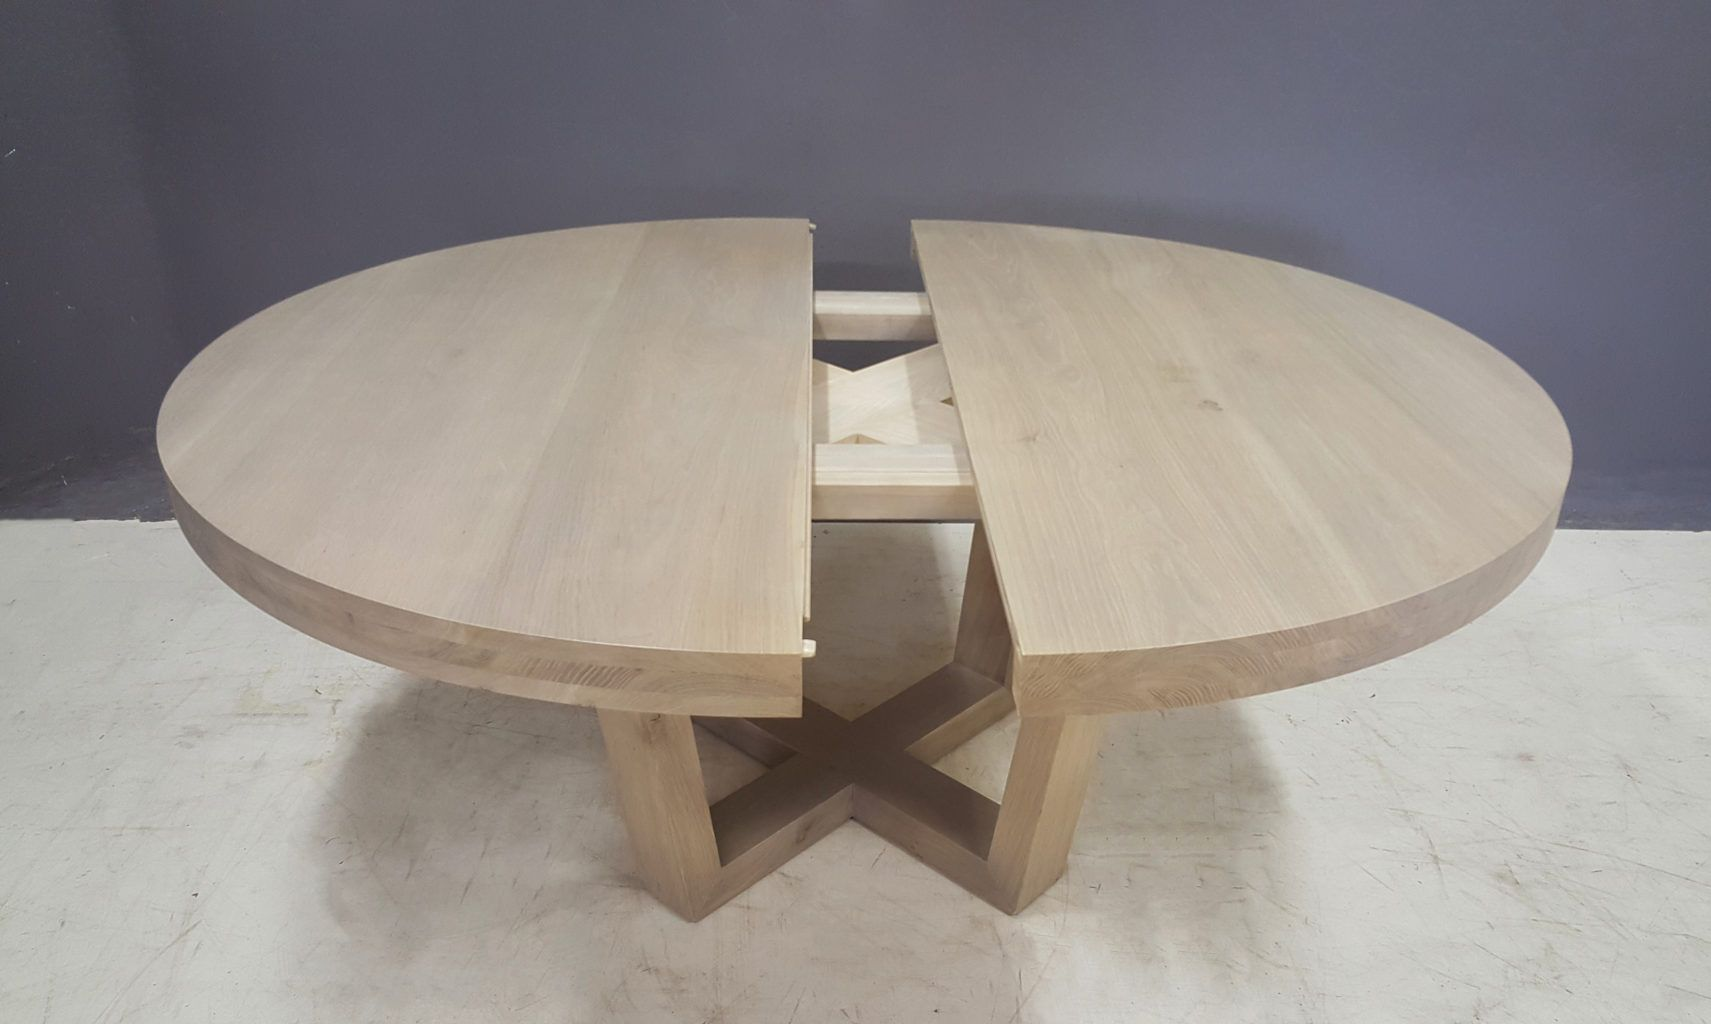 Solid Wood Dining Tables Pierre Cronje Round Dining Room Table Round Extendable Dining Table Round Dining Table Modern